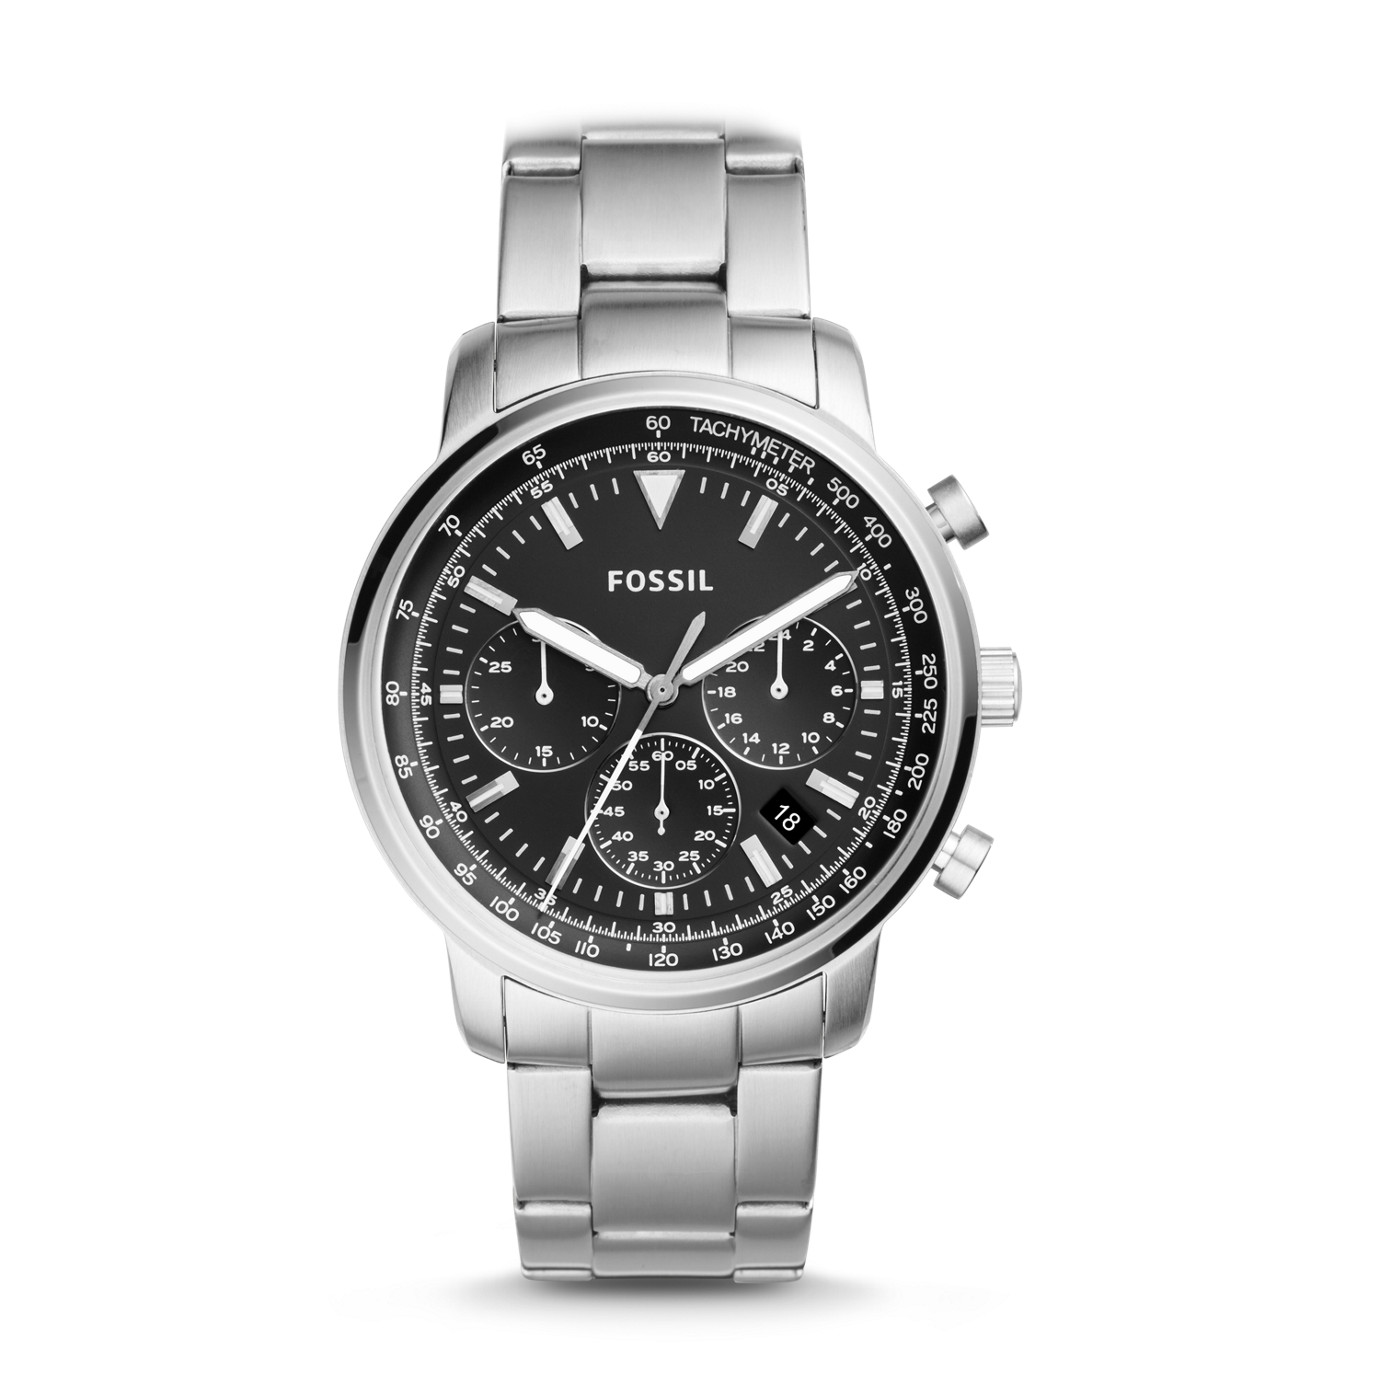 Goodwin Chronogragh Stainless Steel Watch